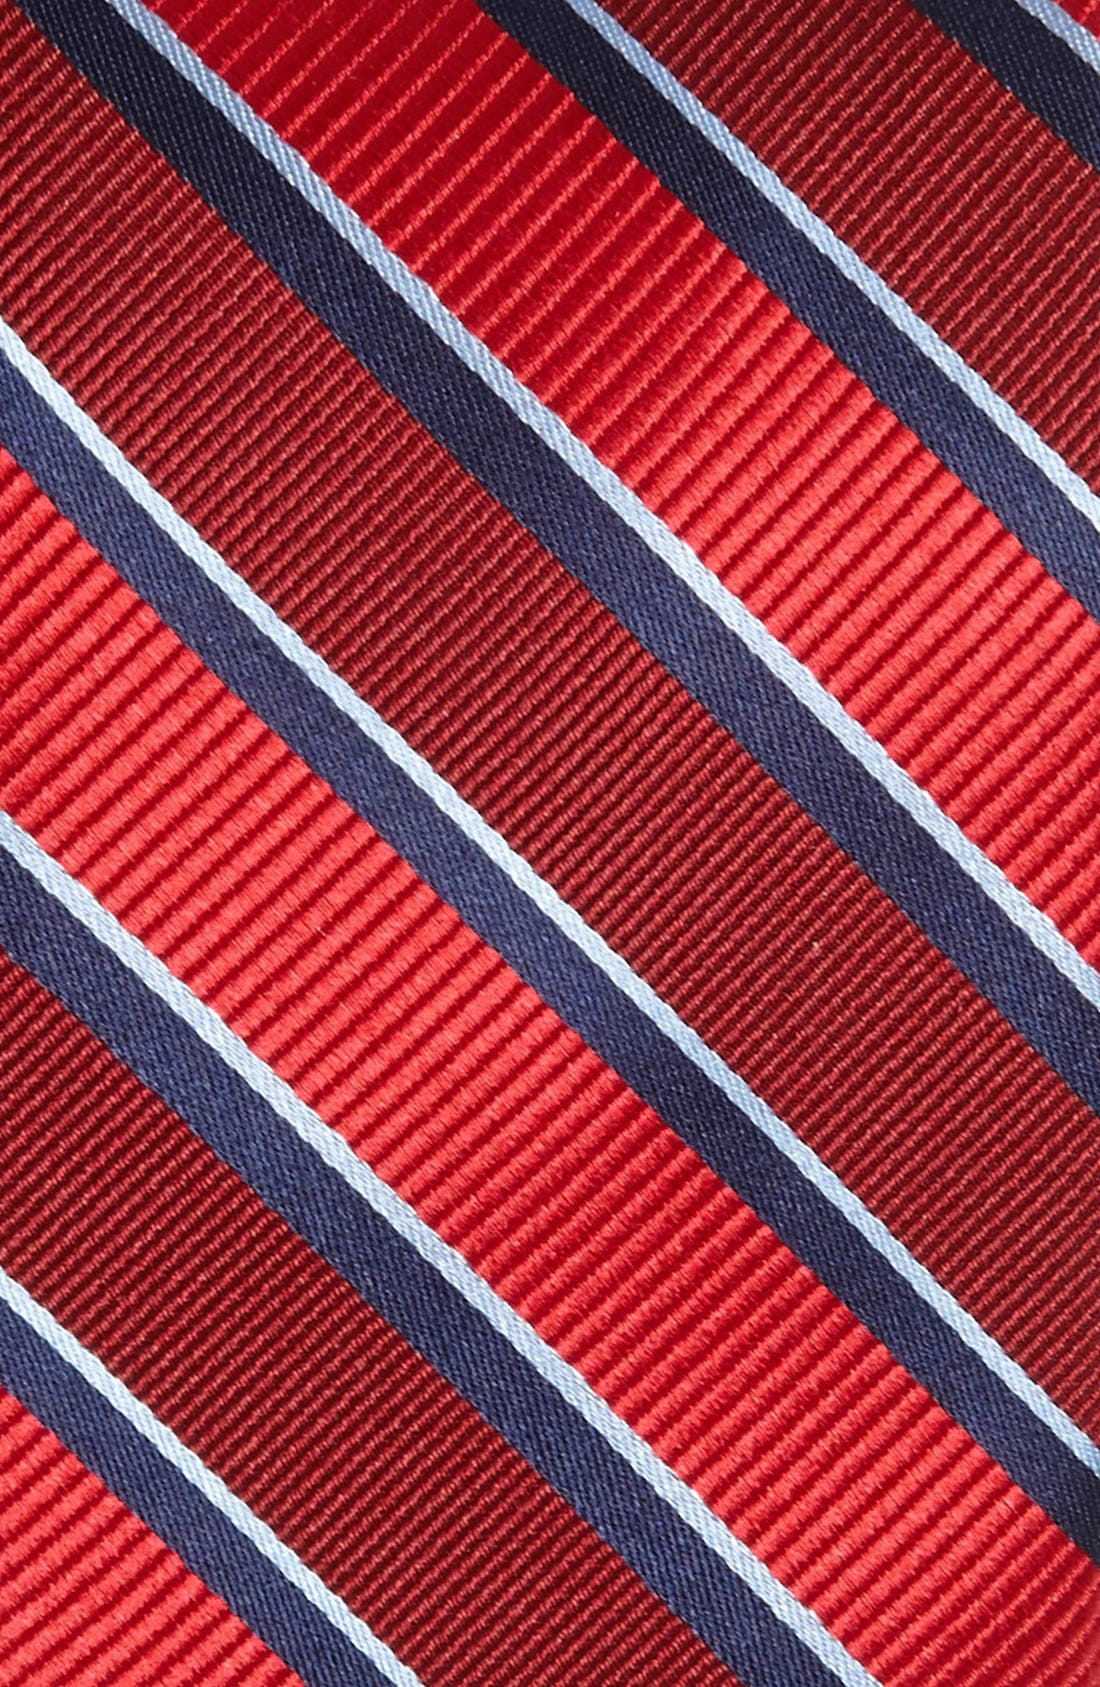 Alternate Image 2  - English Laundry Woven Silk Tie